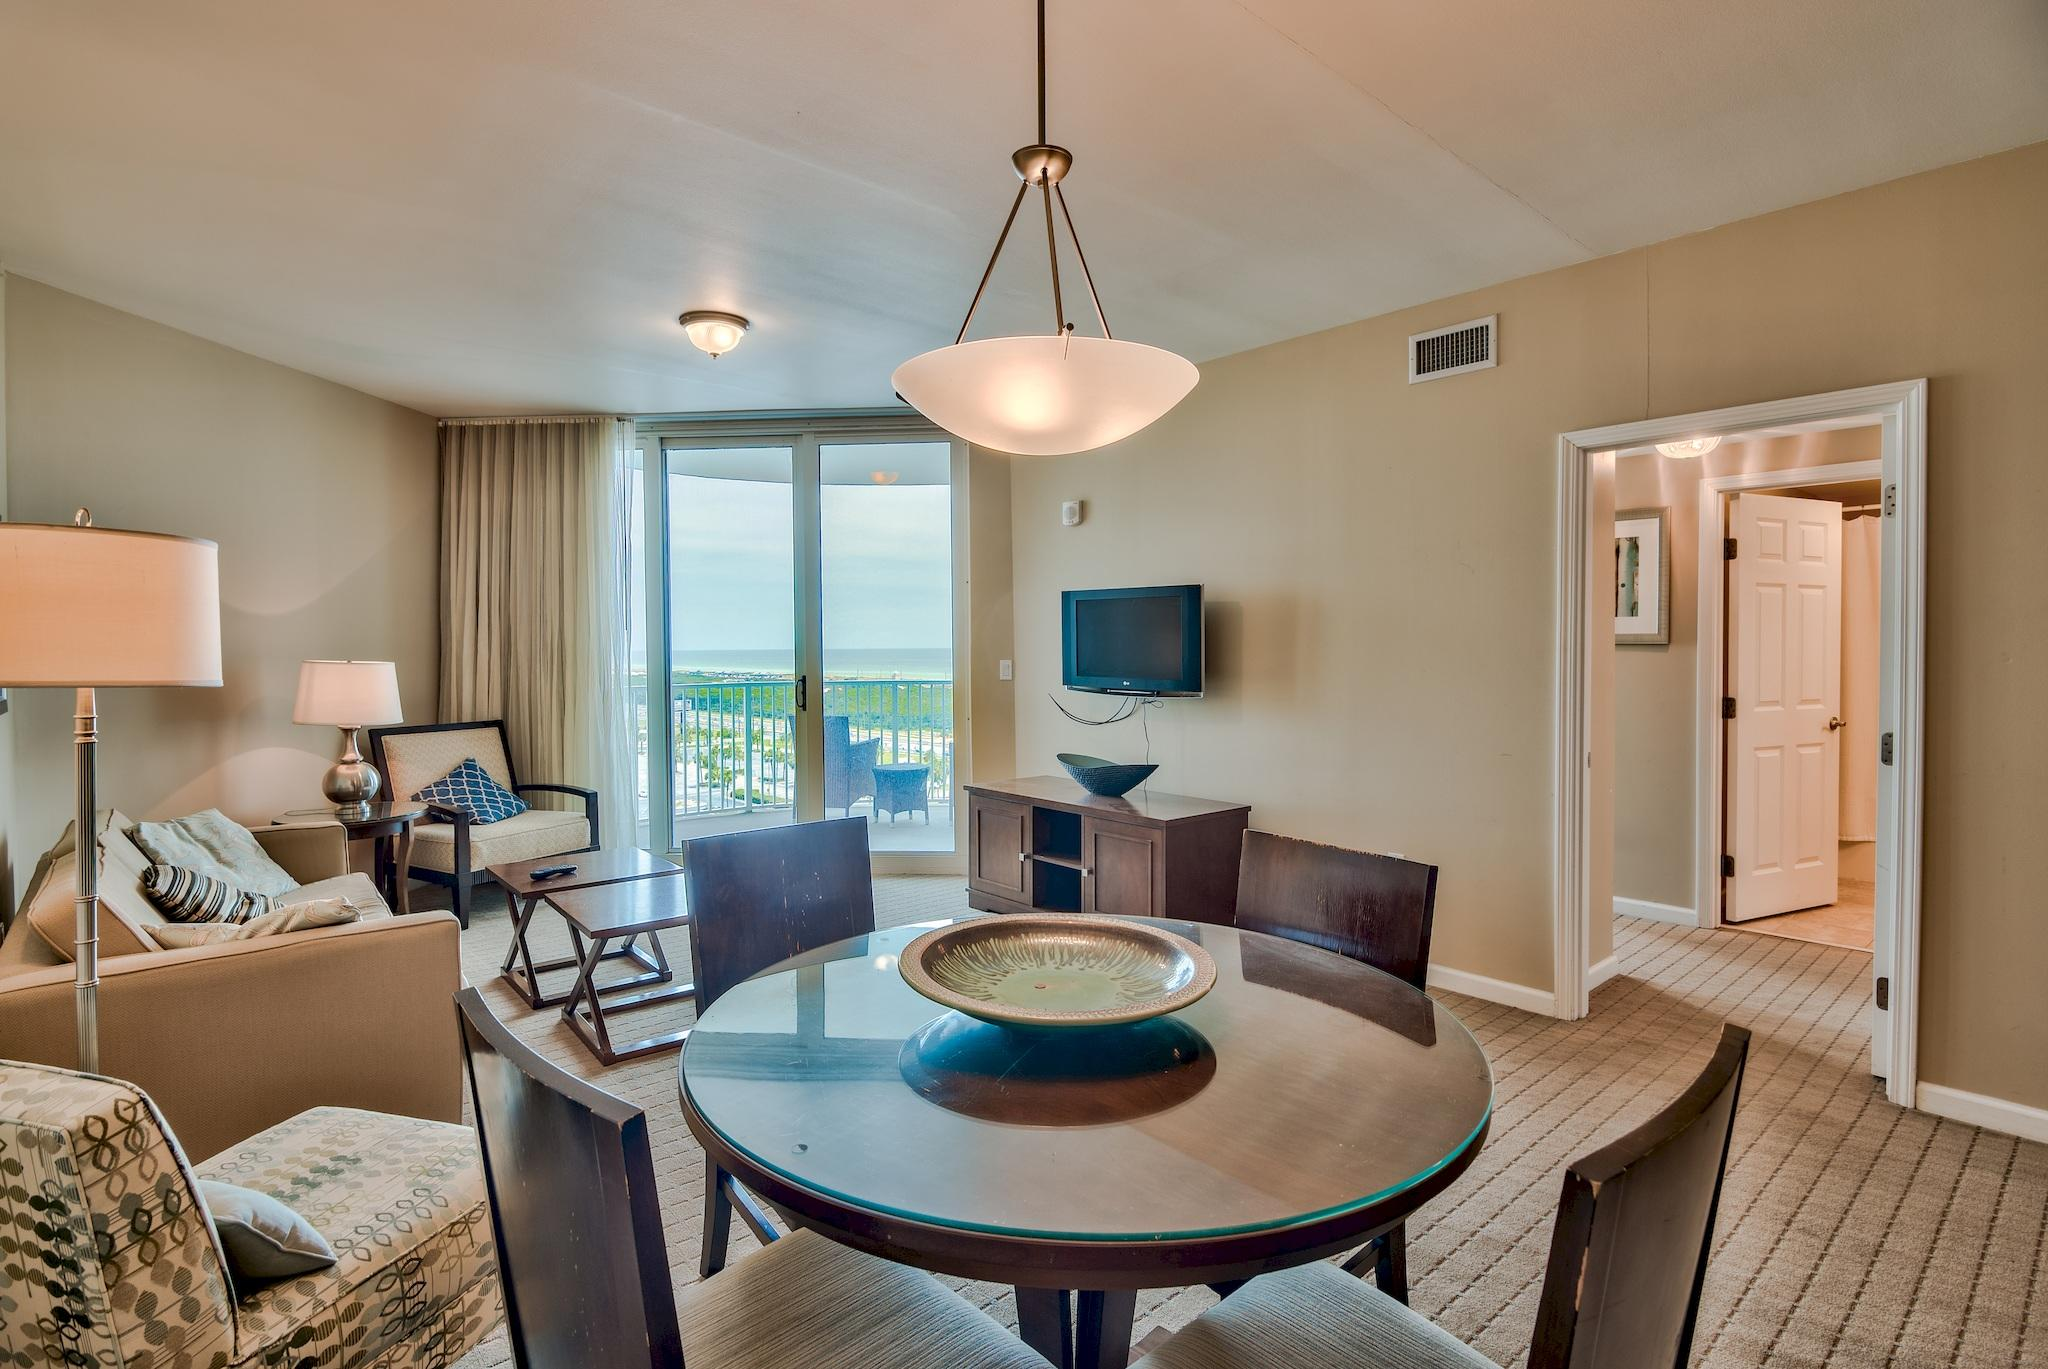 12th (top) floor unit at The Palms of Destin with stunning Gulf and Bay views! Rental projection is for just over $30,000 a year! Kitchen features granite countertops and maple cabinetry. Amenities at The Palms are first class. They include an expansive 11,000 SF lagoon pool with waterfall and spa, children's pool, playground and splash pool, lighted tennis and basketball courts, first class fitness center, seasonal shuttle service to the beach, and covered protected parking. Also on site is the  conference center, office center, and reception desk. THE ASSOCIATION FEES INCLUDE ALL UTILITIES, INCLUDING ELECTRICITY, WATER, CABLE, INTERNET, AND LOCAL PHONE SERVICE. Buyer to please verify all information including square footage, room dimensions, and all else.